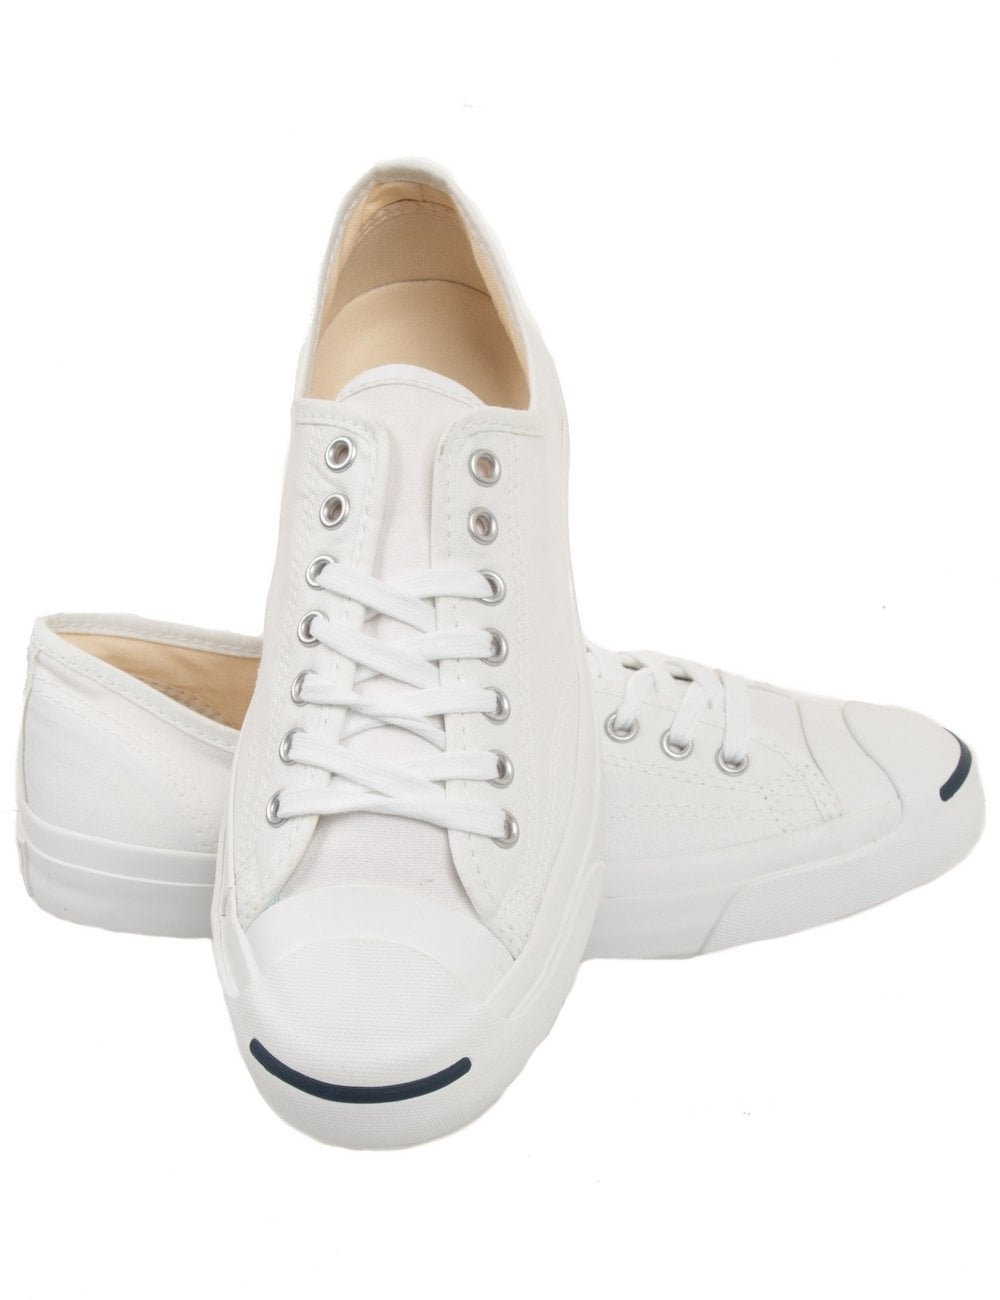 Converse Jack Purcell Jack Purcell CP